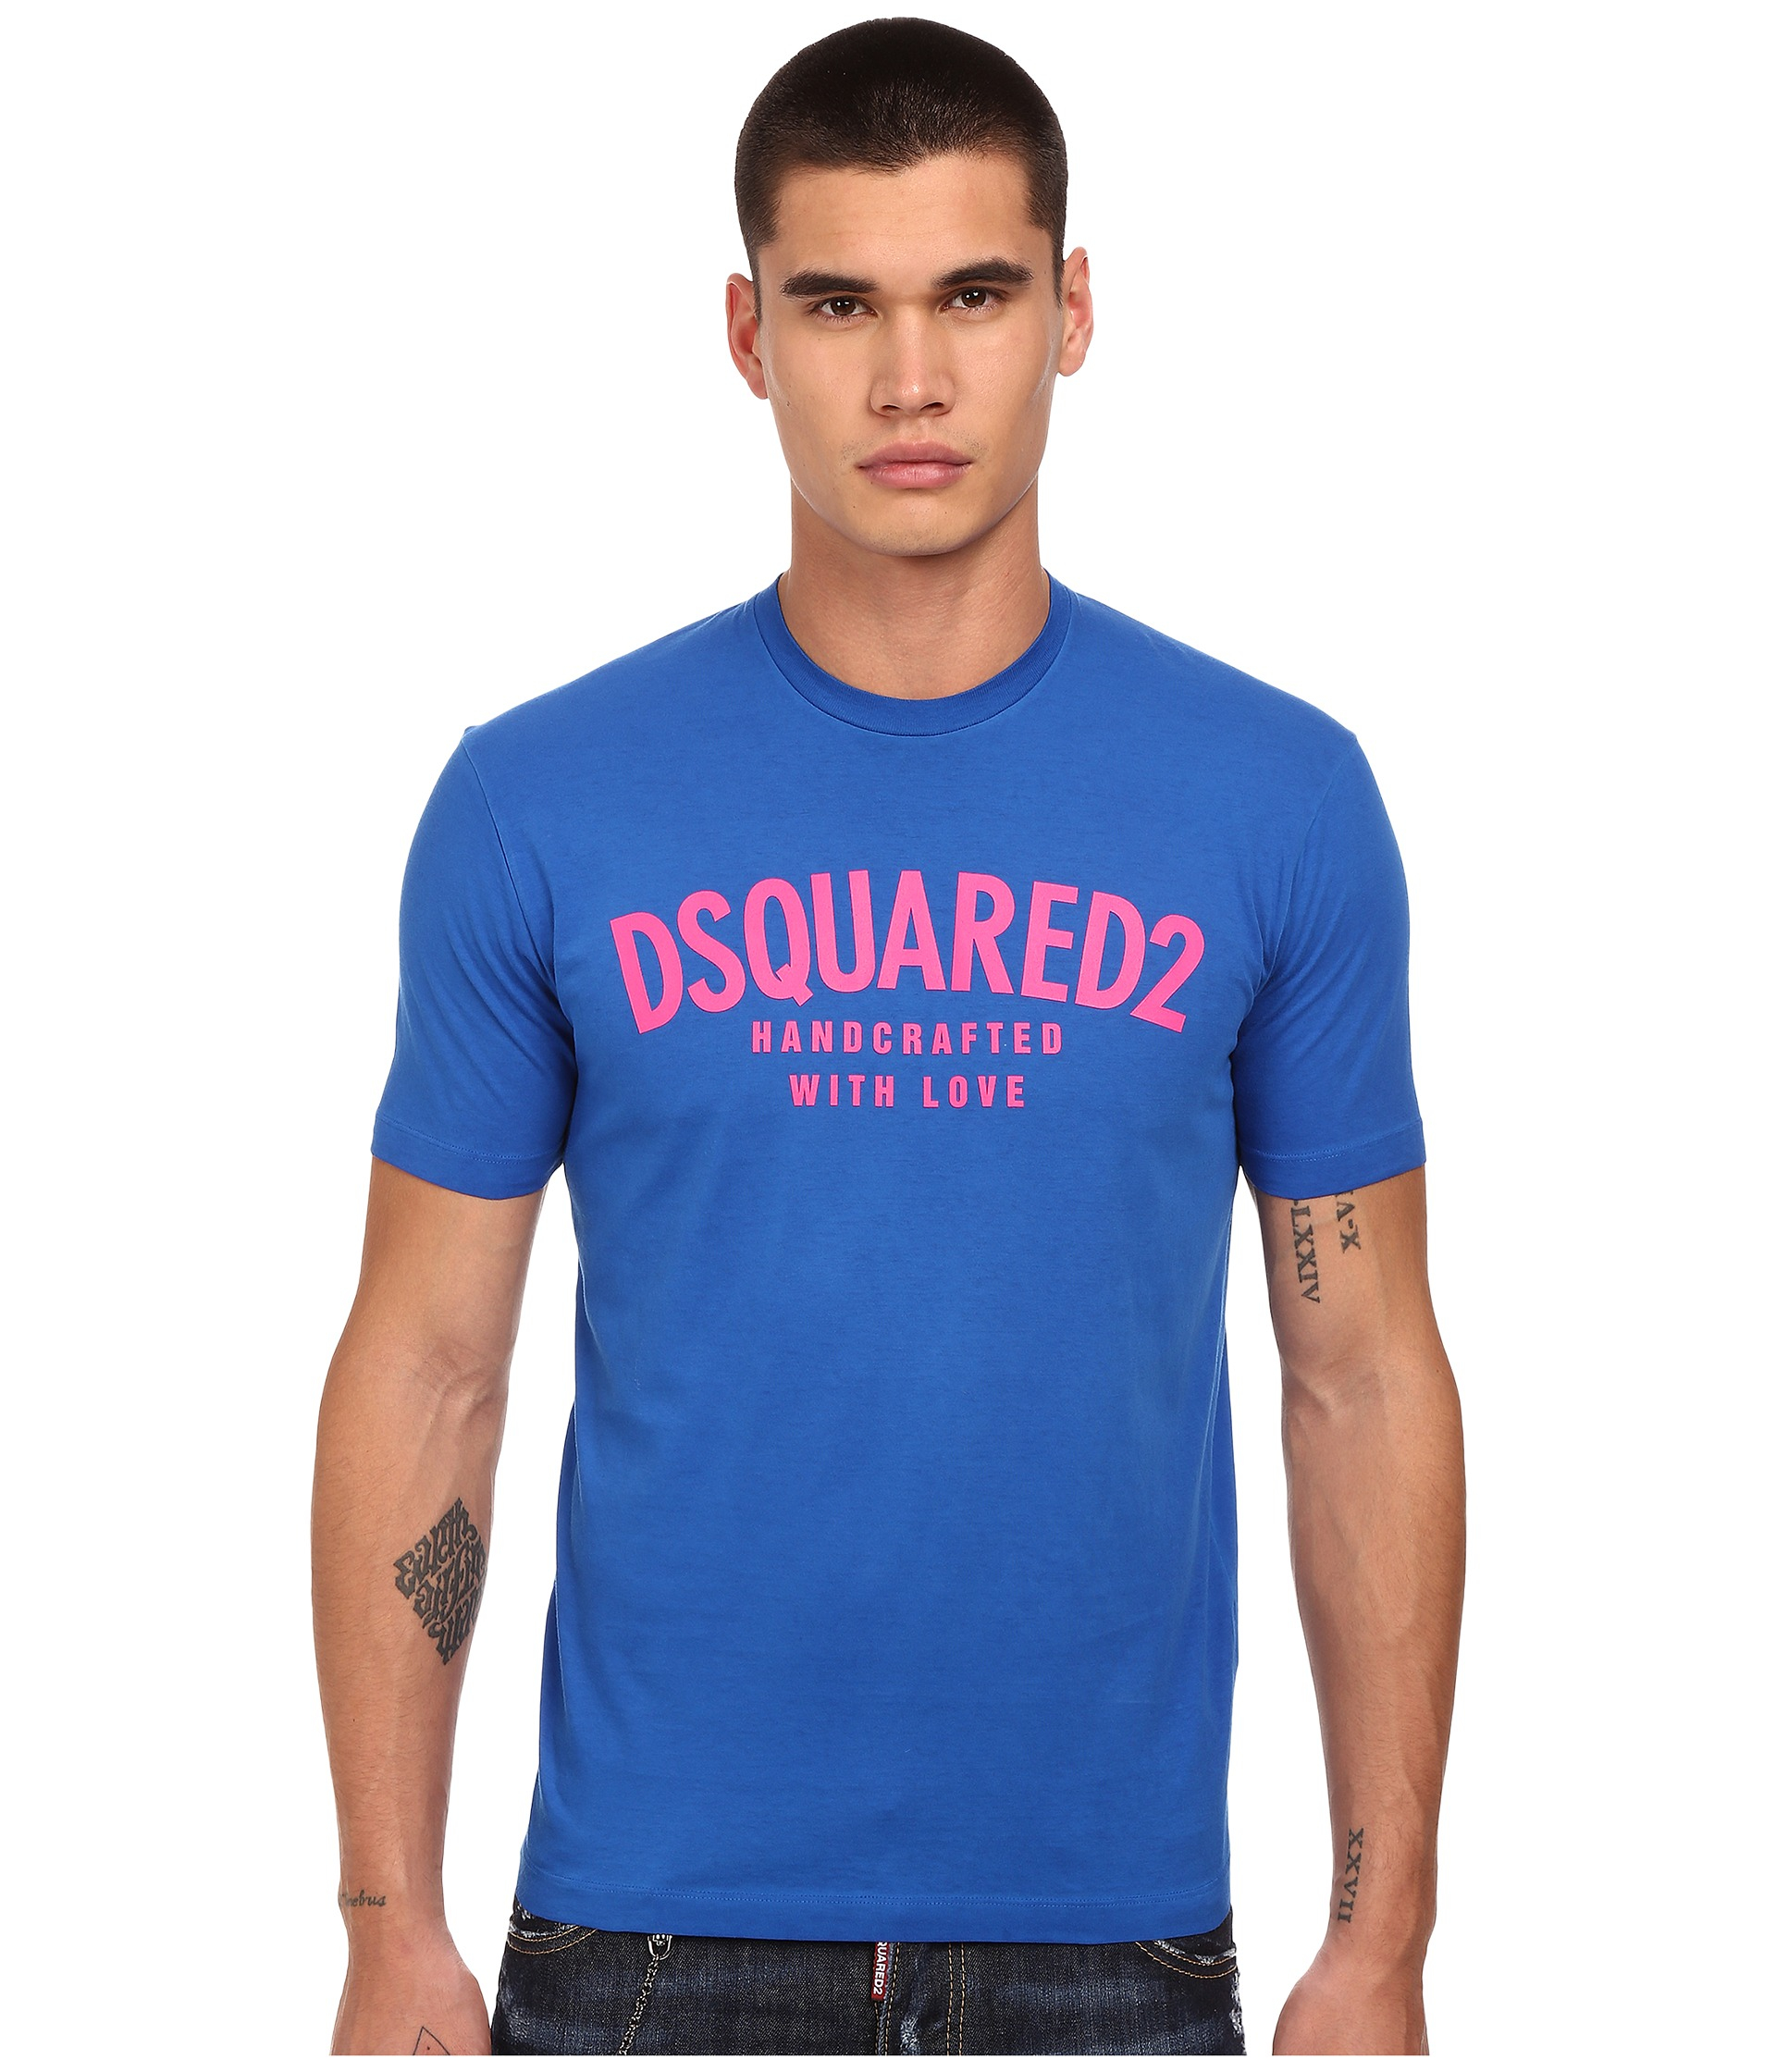 32b9051ab149 DSquared² Handcrafted With Love T-shirt in Blue for Men - Lyst